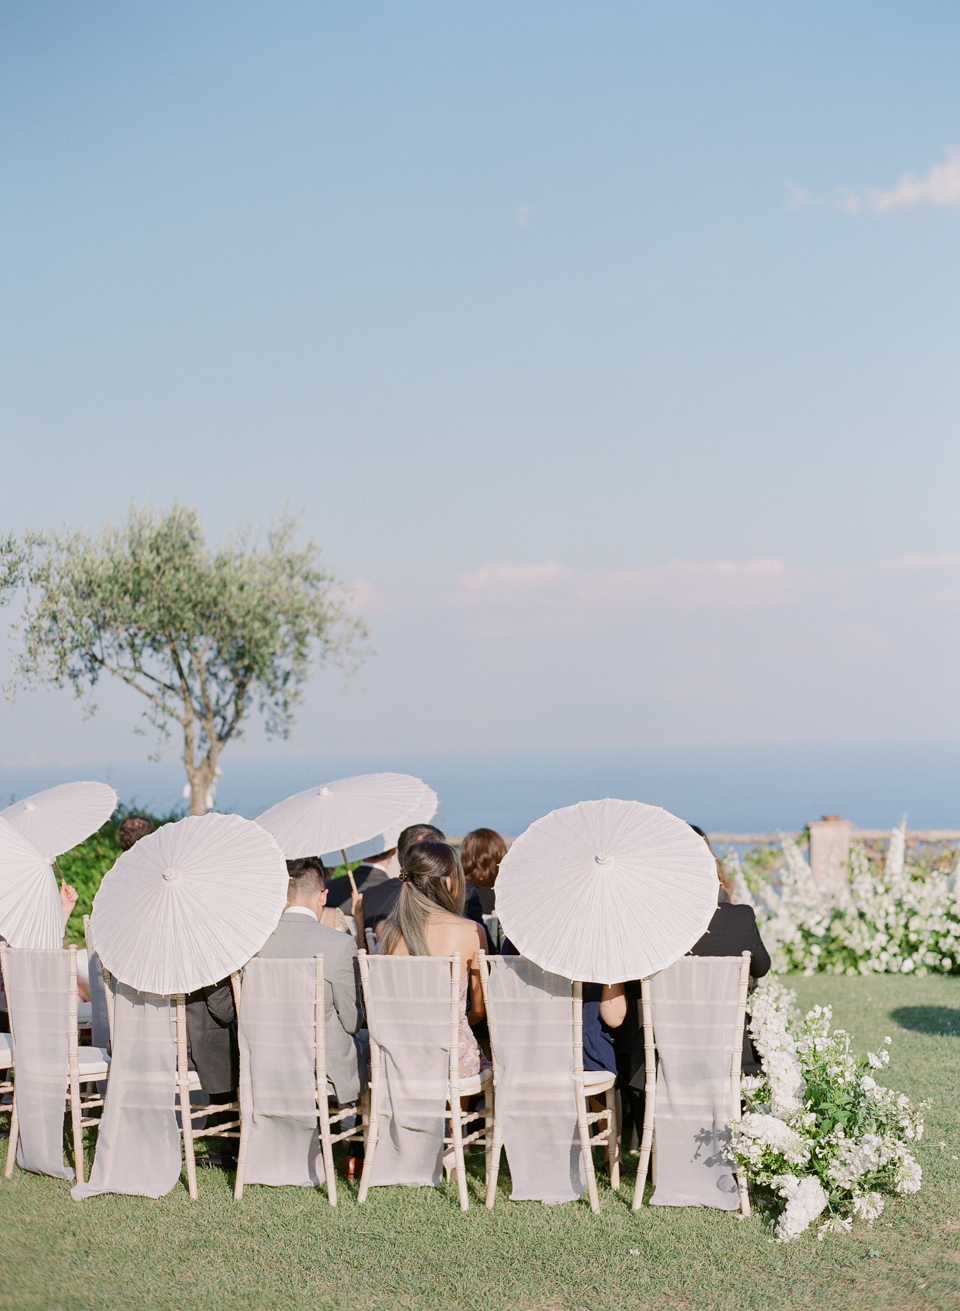 adrienne cameron wedding ceremony guests holding parasols